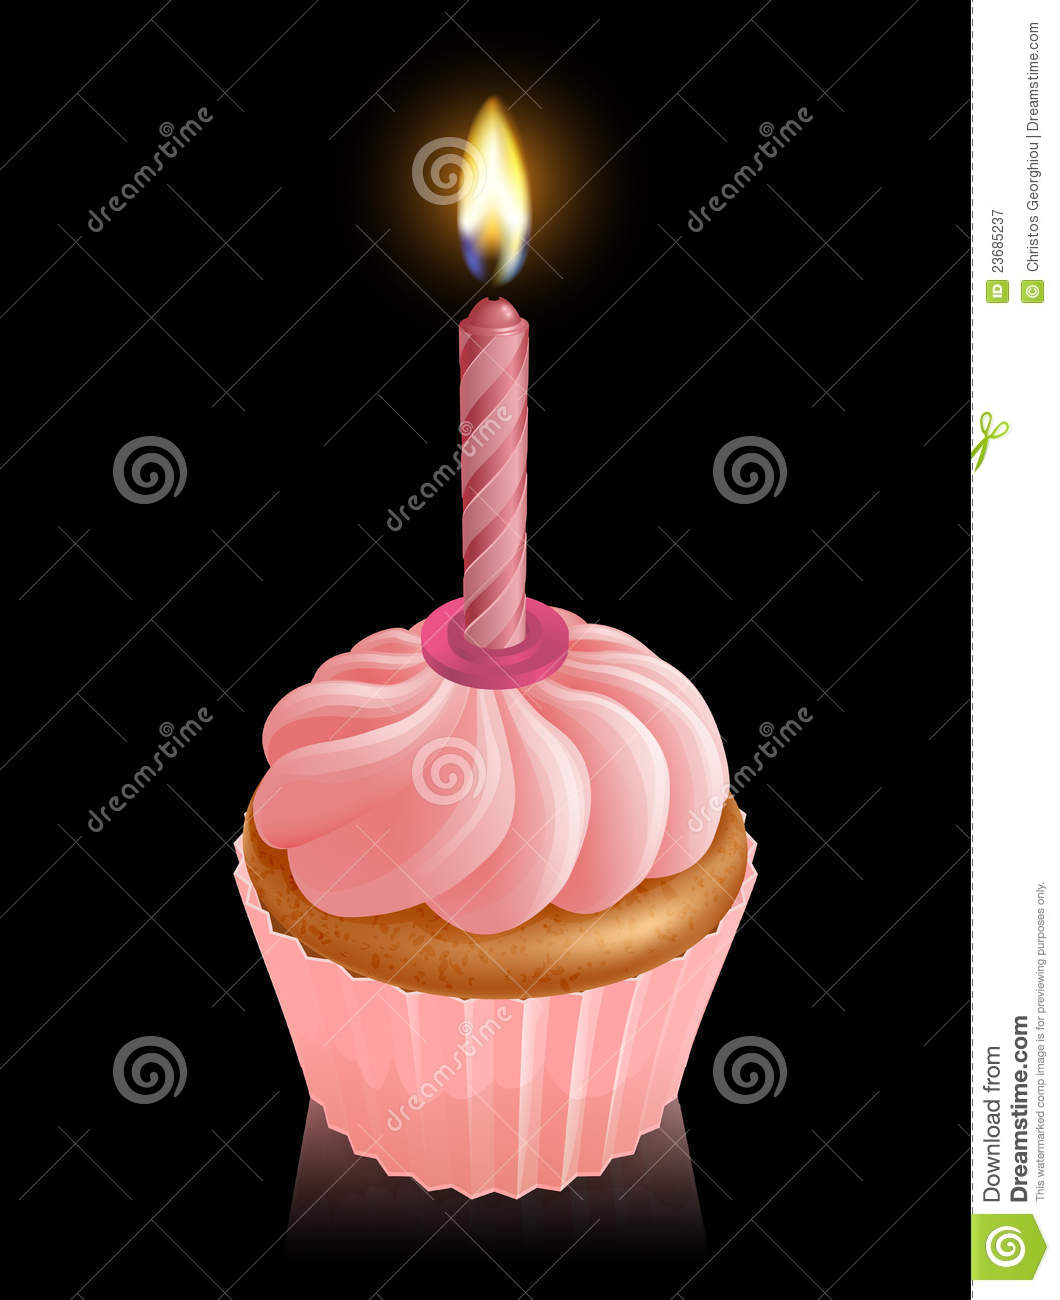 Pink Fairy Cake Cupcake With Birthday Candle Royalty Free